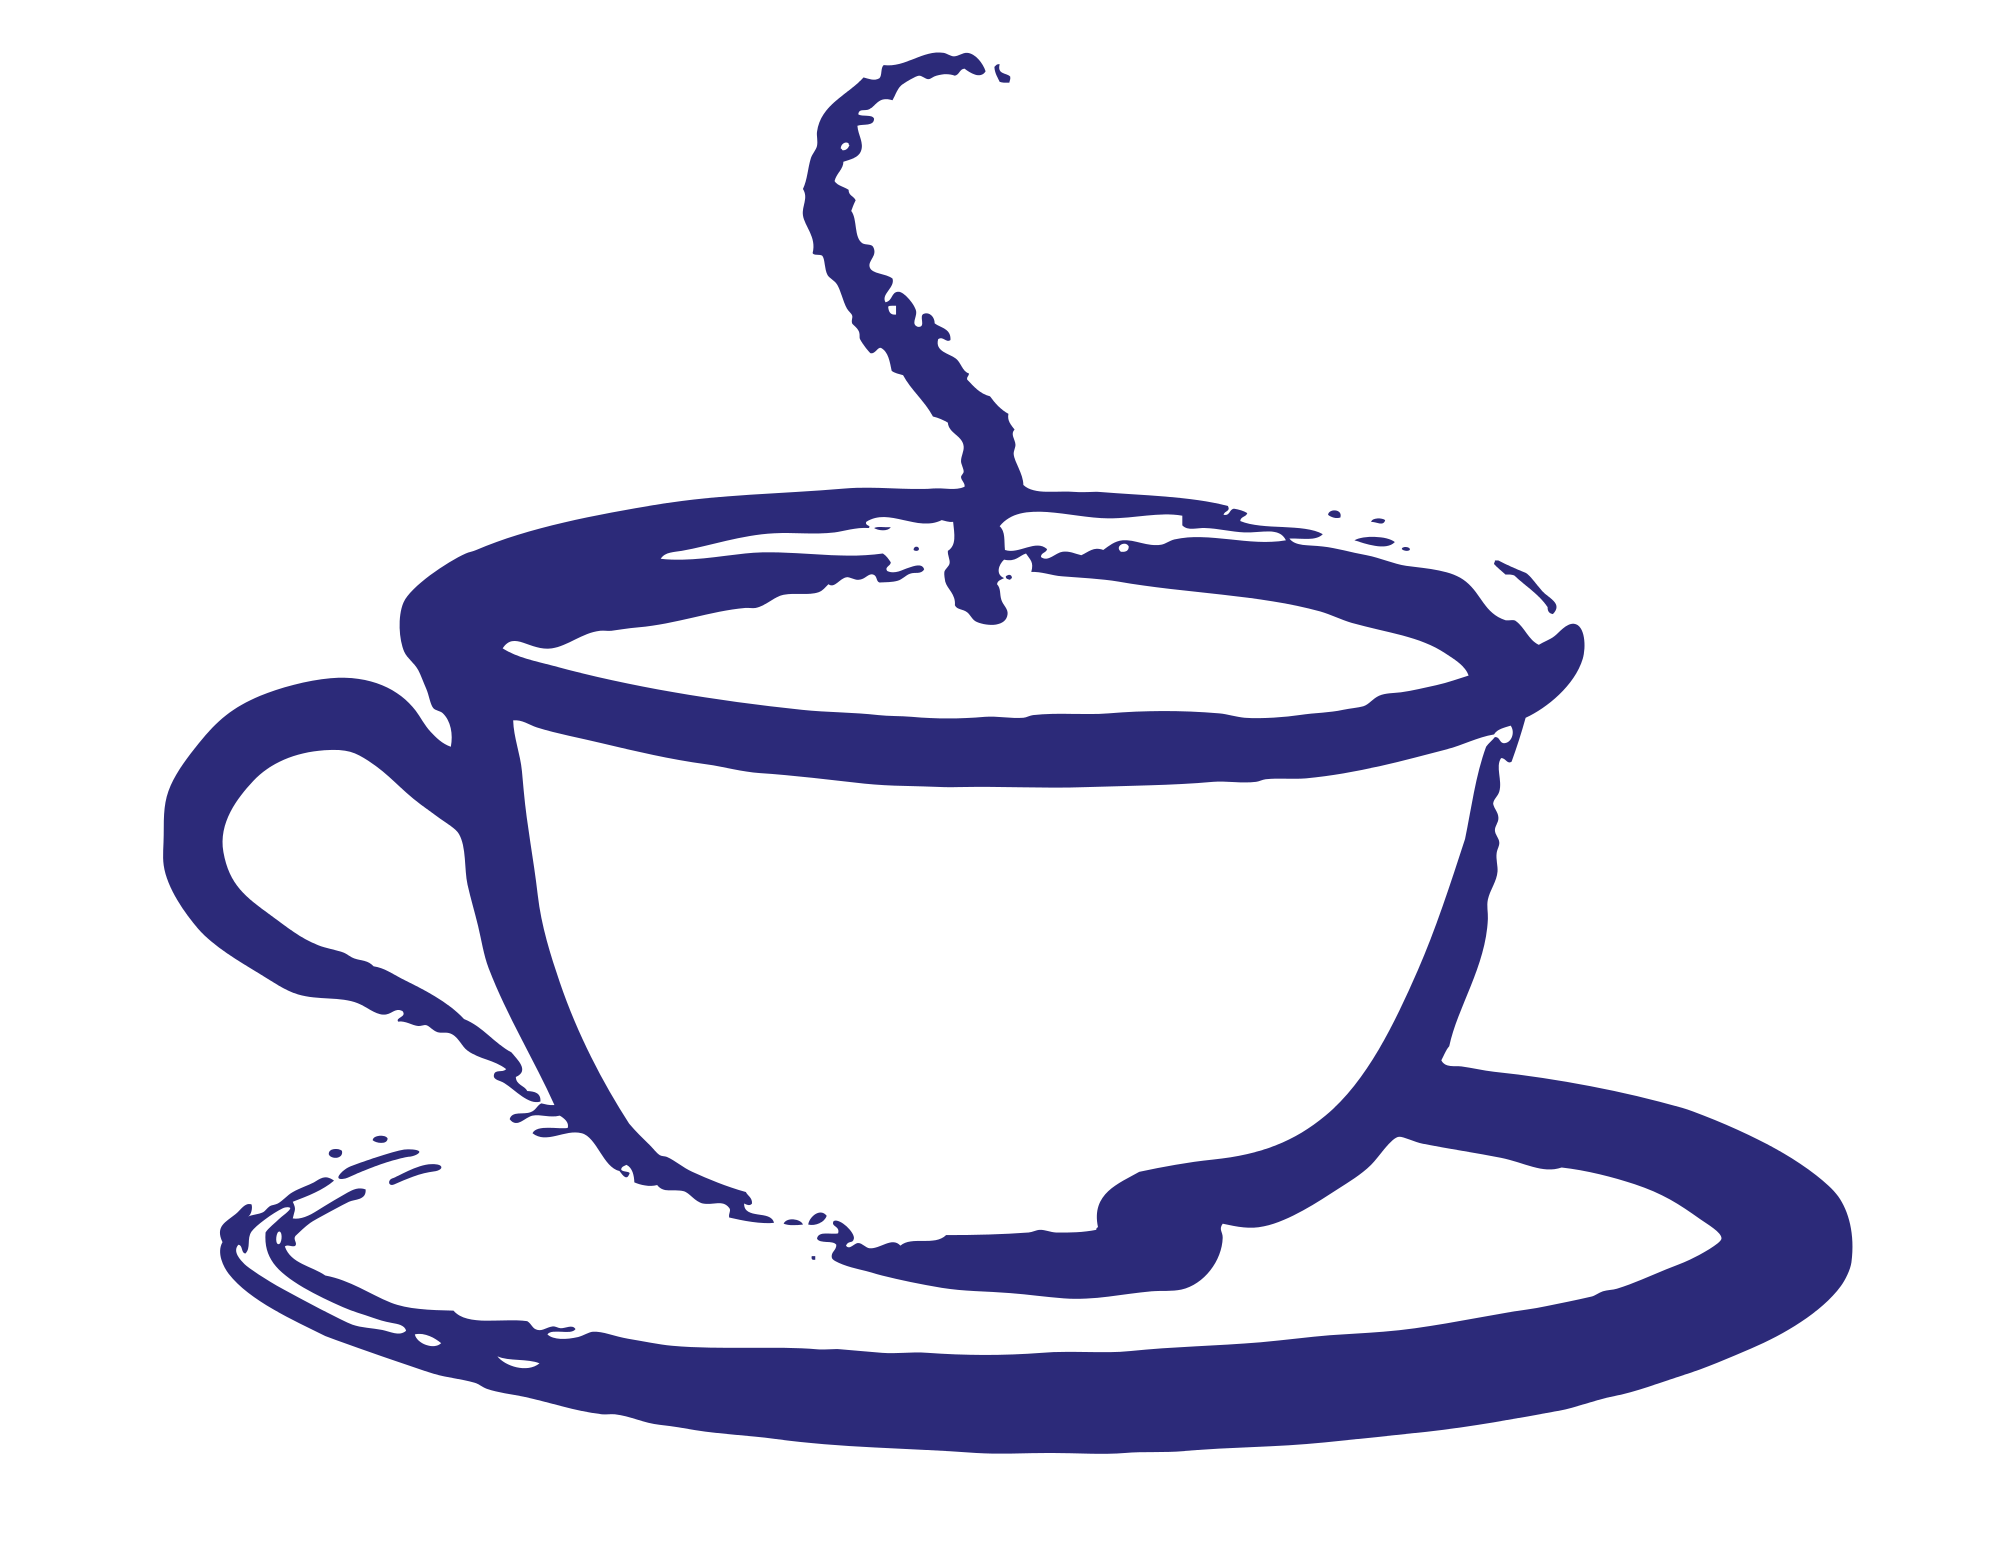 Clipart coffee file. Teacup svg wikimedia commons